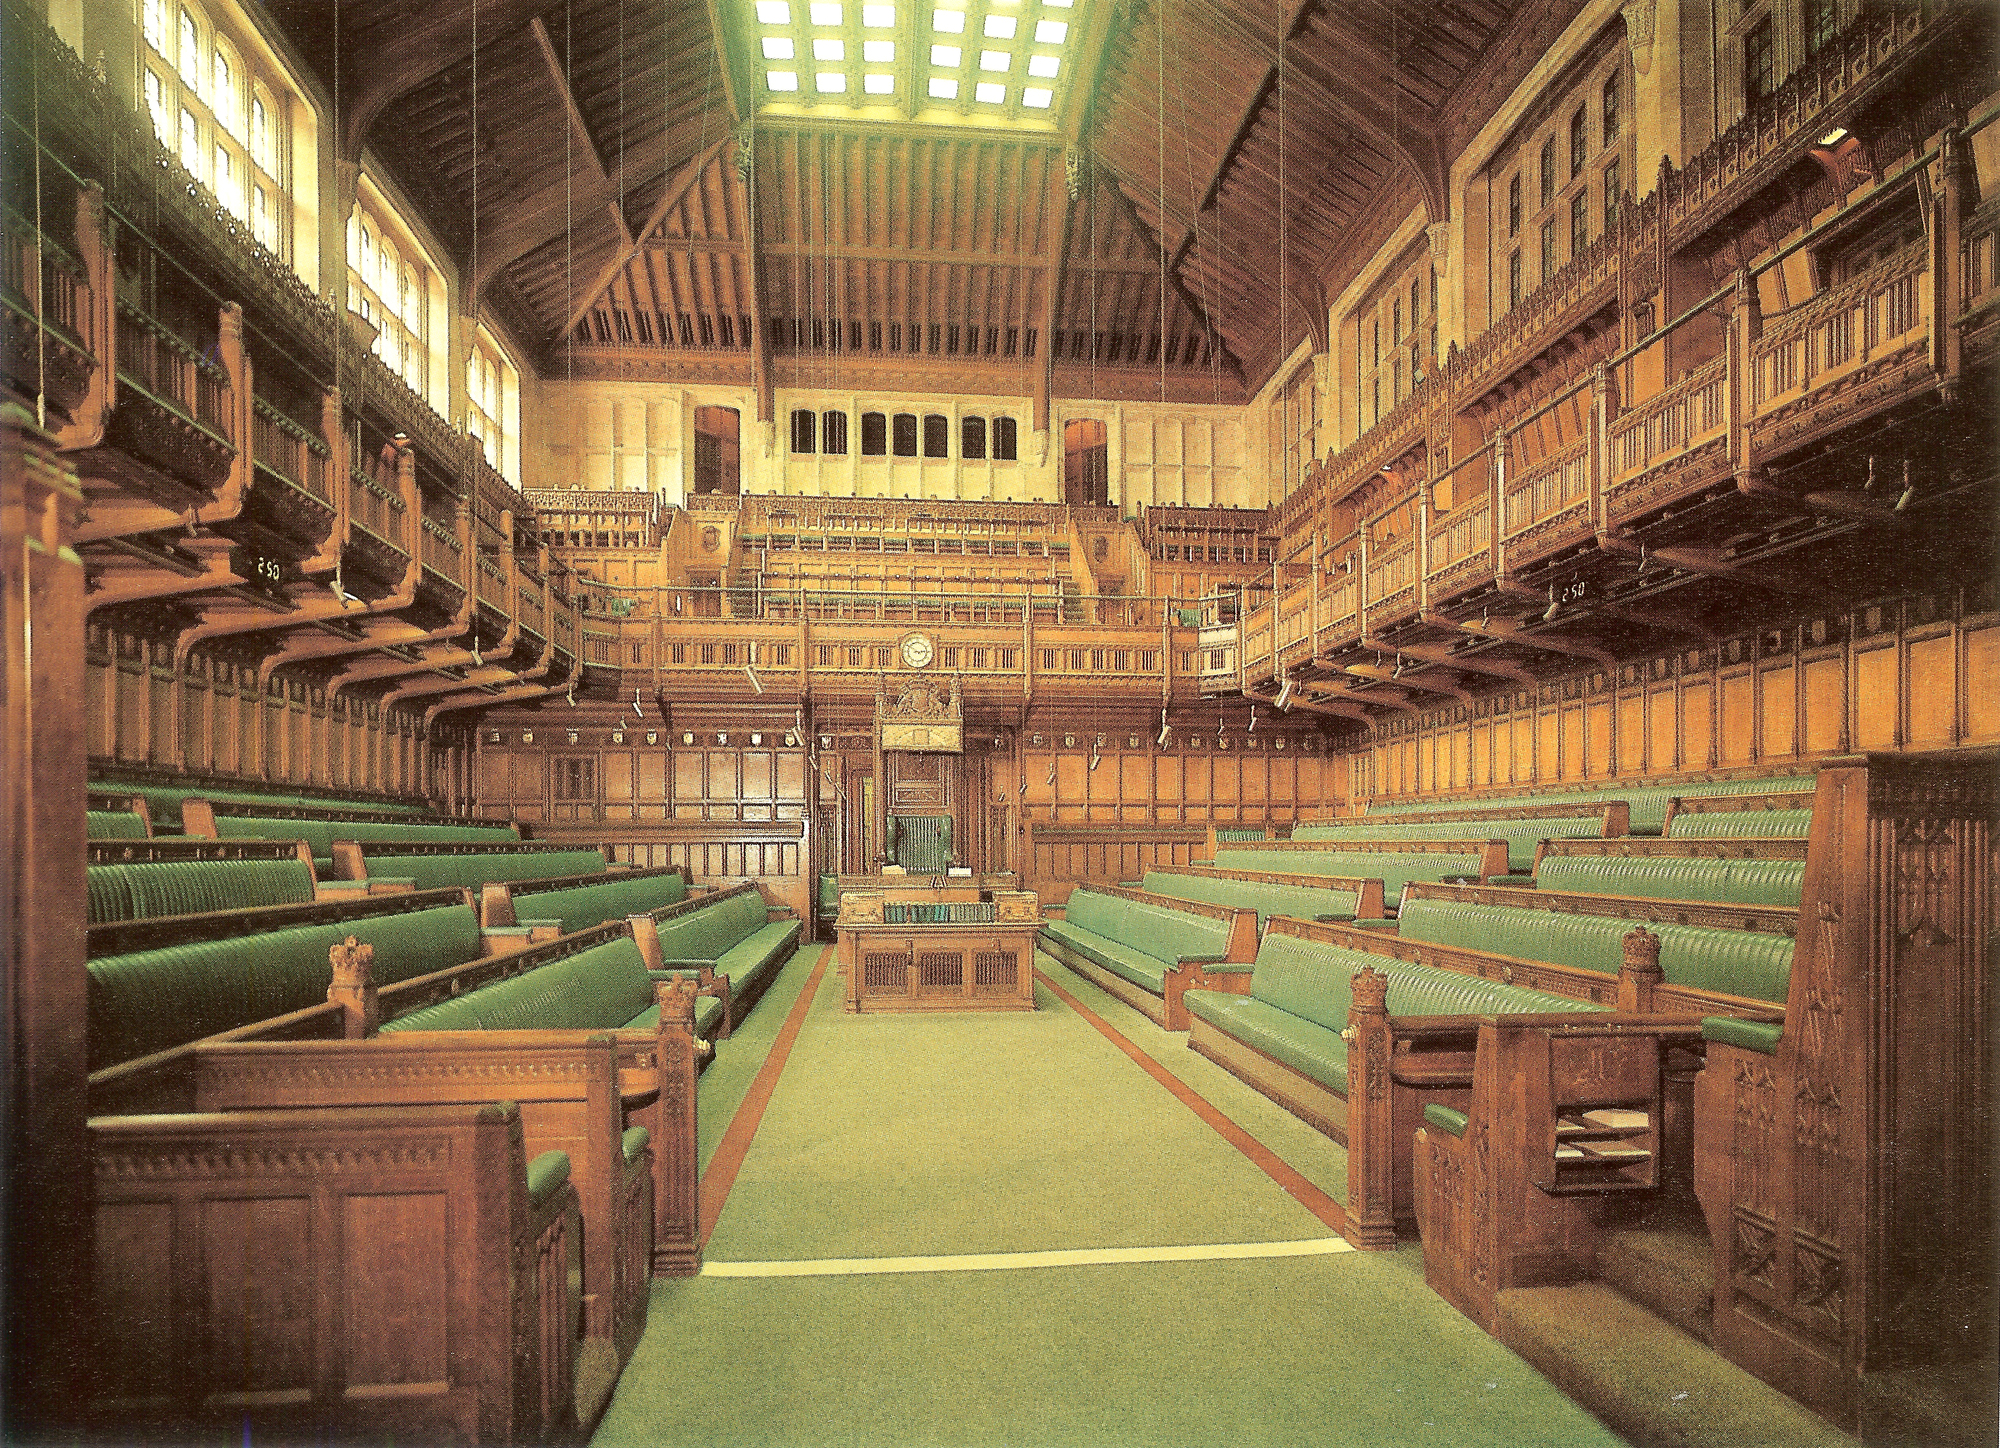 Houses Of Parliament Interior. House of Commons  Image Courtesy Burton Skira Inc AD Classics Palace Westminster Charles Barry Augustus